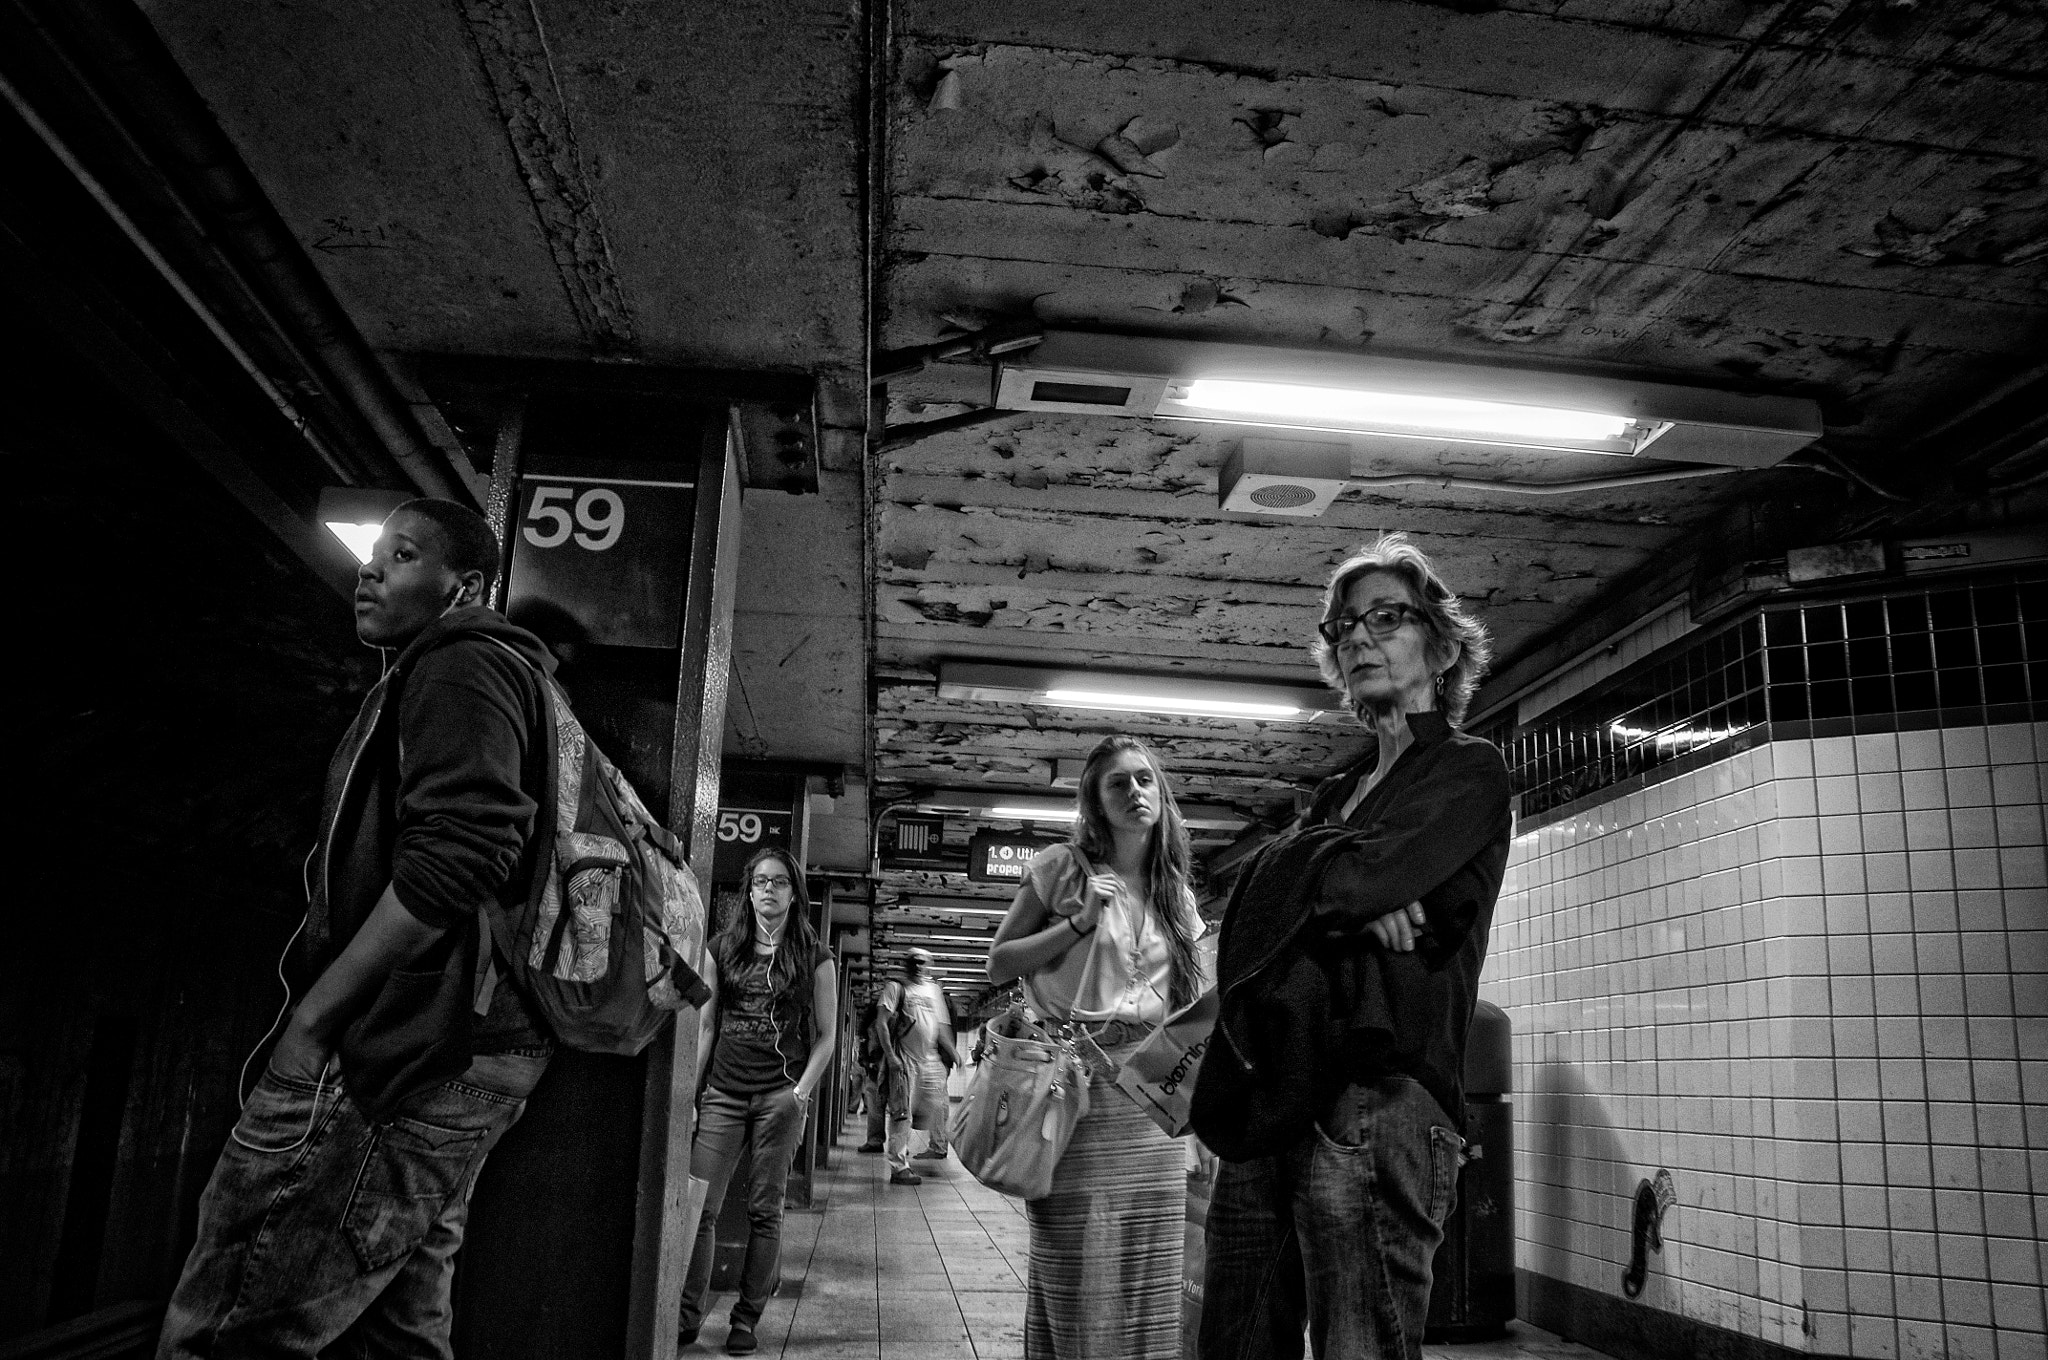 Photograph 59th Street by David Winters on 500px